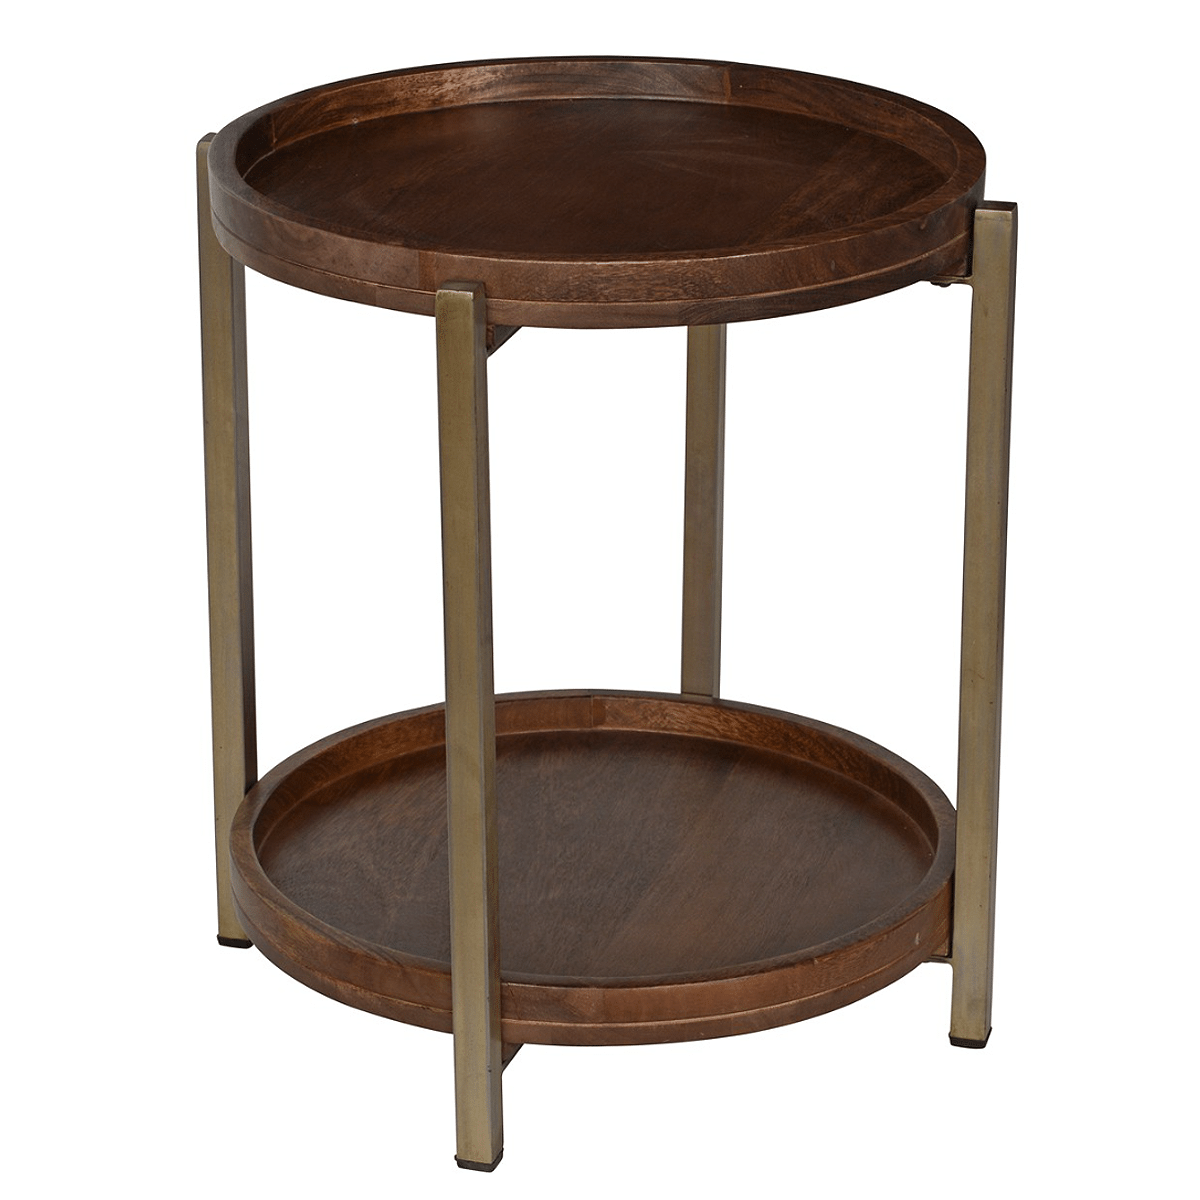 baxter-side-table-1-shopceladon